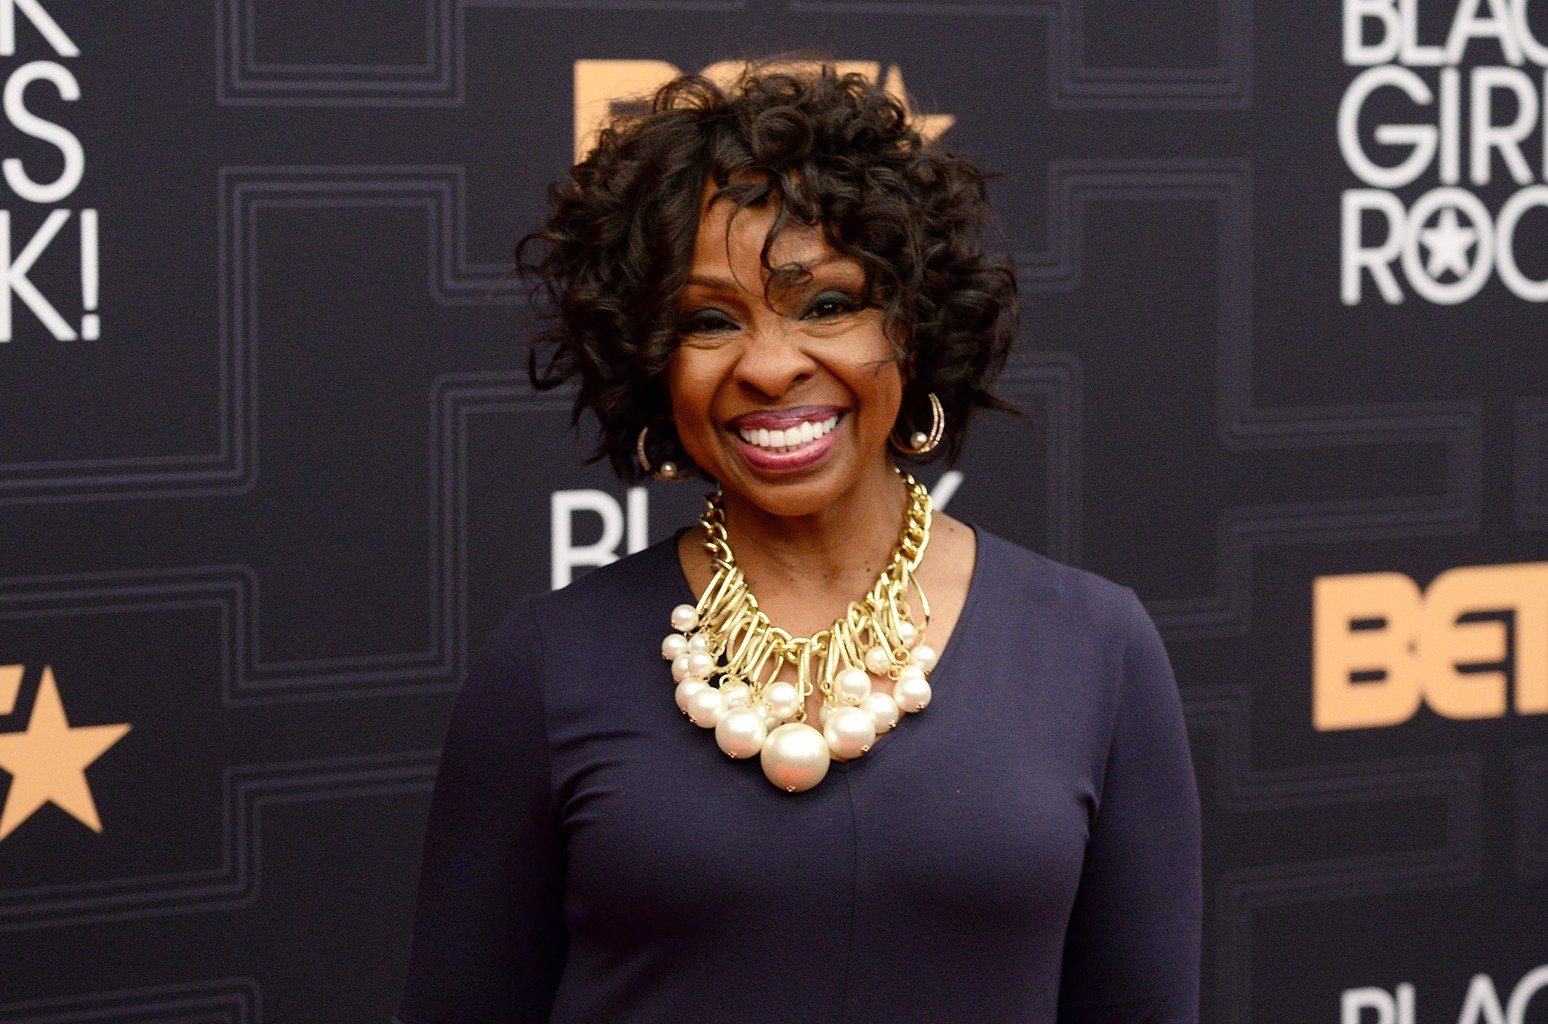 Gladys Knight attends Black Girls Rock! 2016 on April 1, 2016 in New York City.